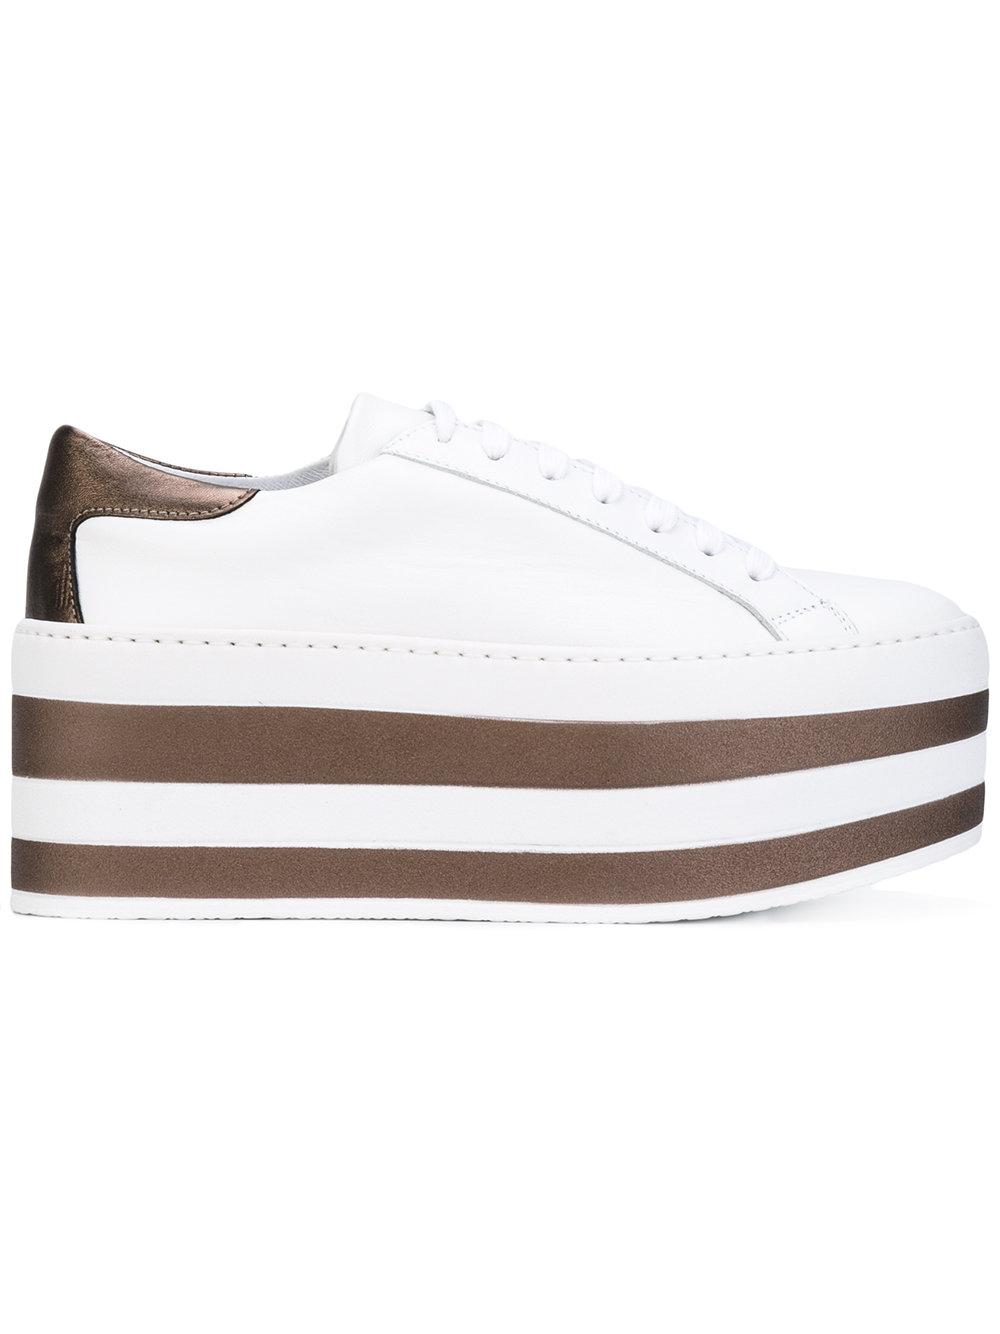 Marc Ellis platform sneakers best deals 267tXmnq